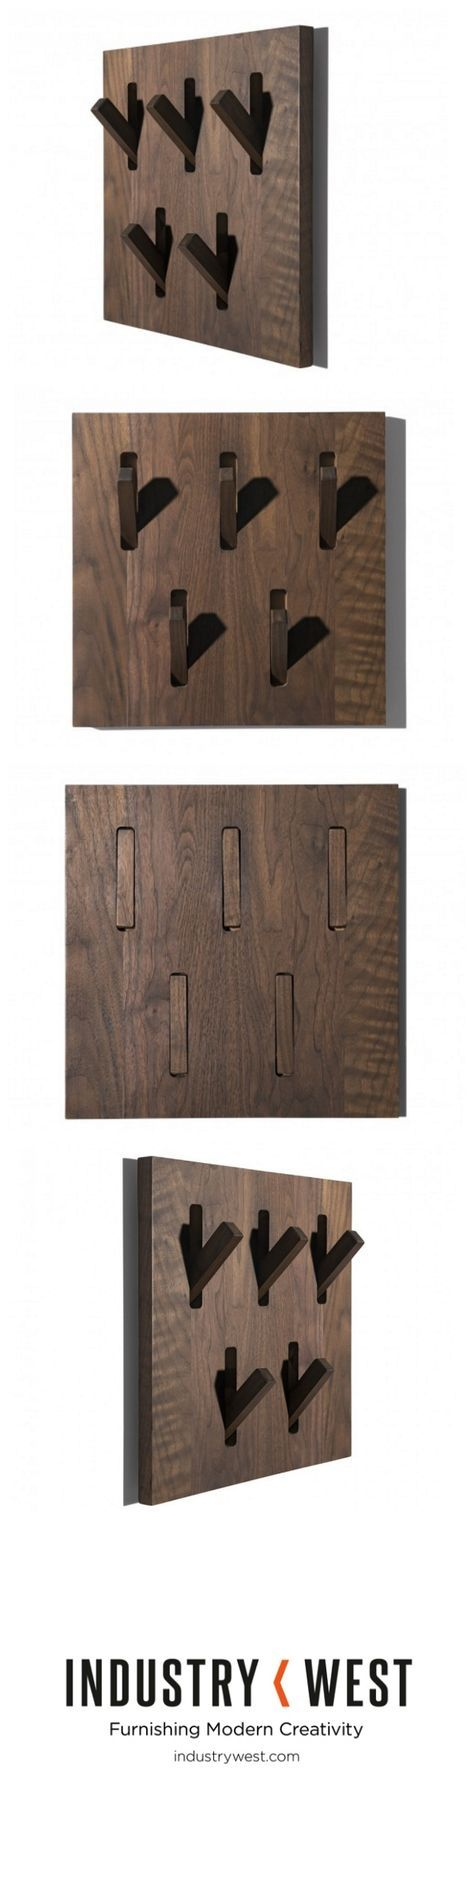 This walnut coat rack is both an exquisite design piece and a space-saving, storage solution. Designed by Patrik Turner for Ethnicraft, this piece is both aesthetically pleasing and practical. Flip out some or all of the Utilitile's hooks to hang coats, umbrellas or really anything.